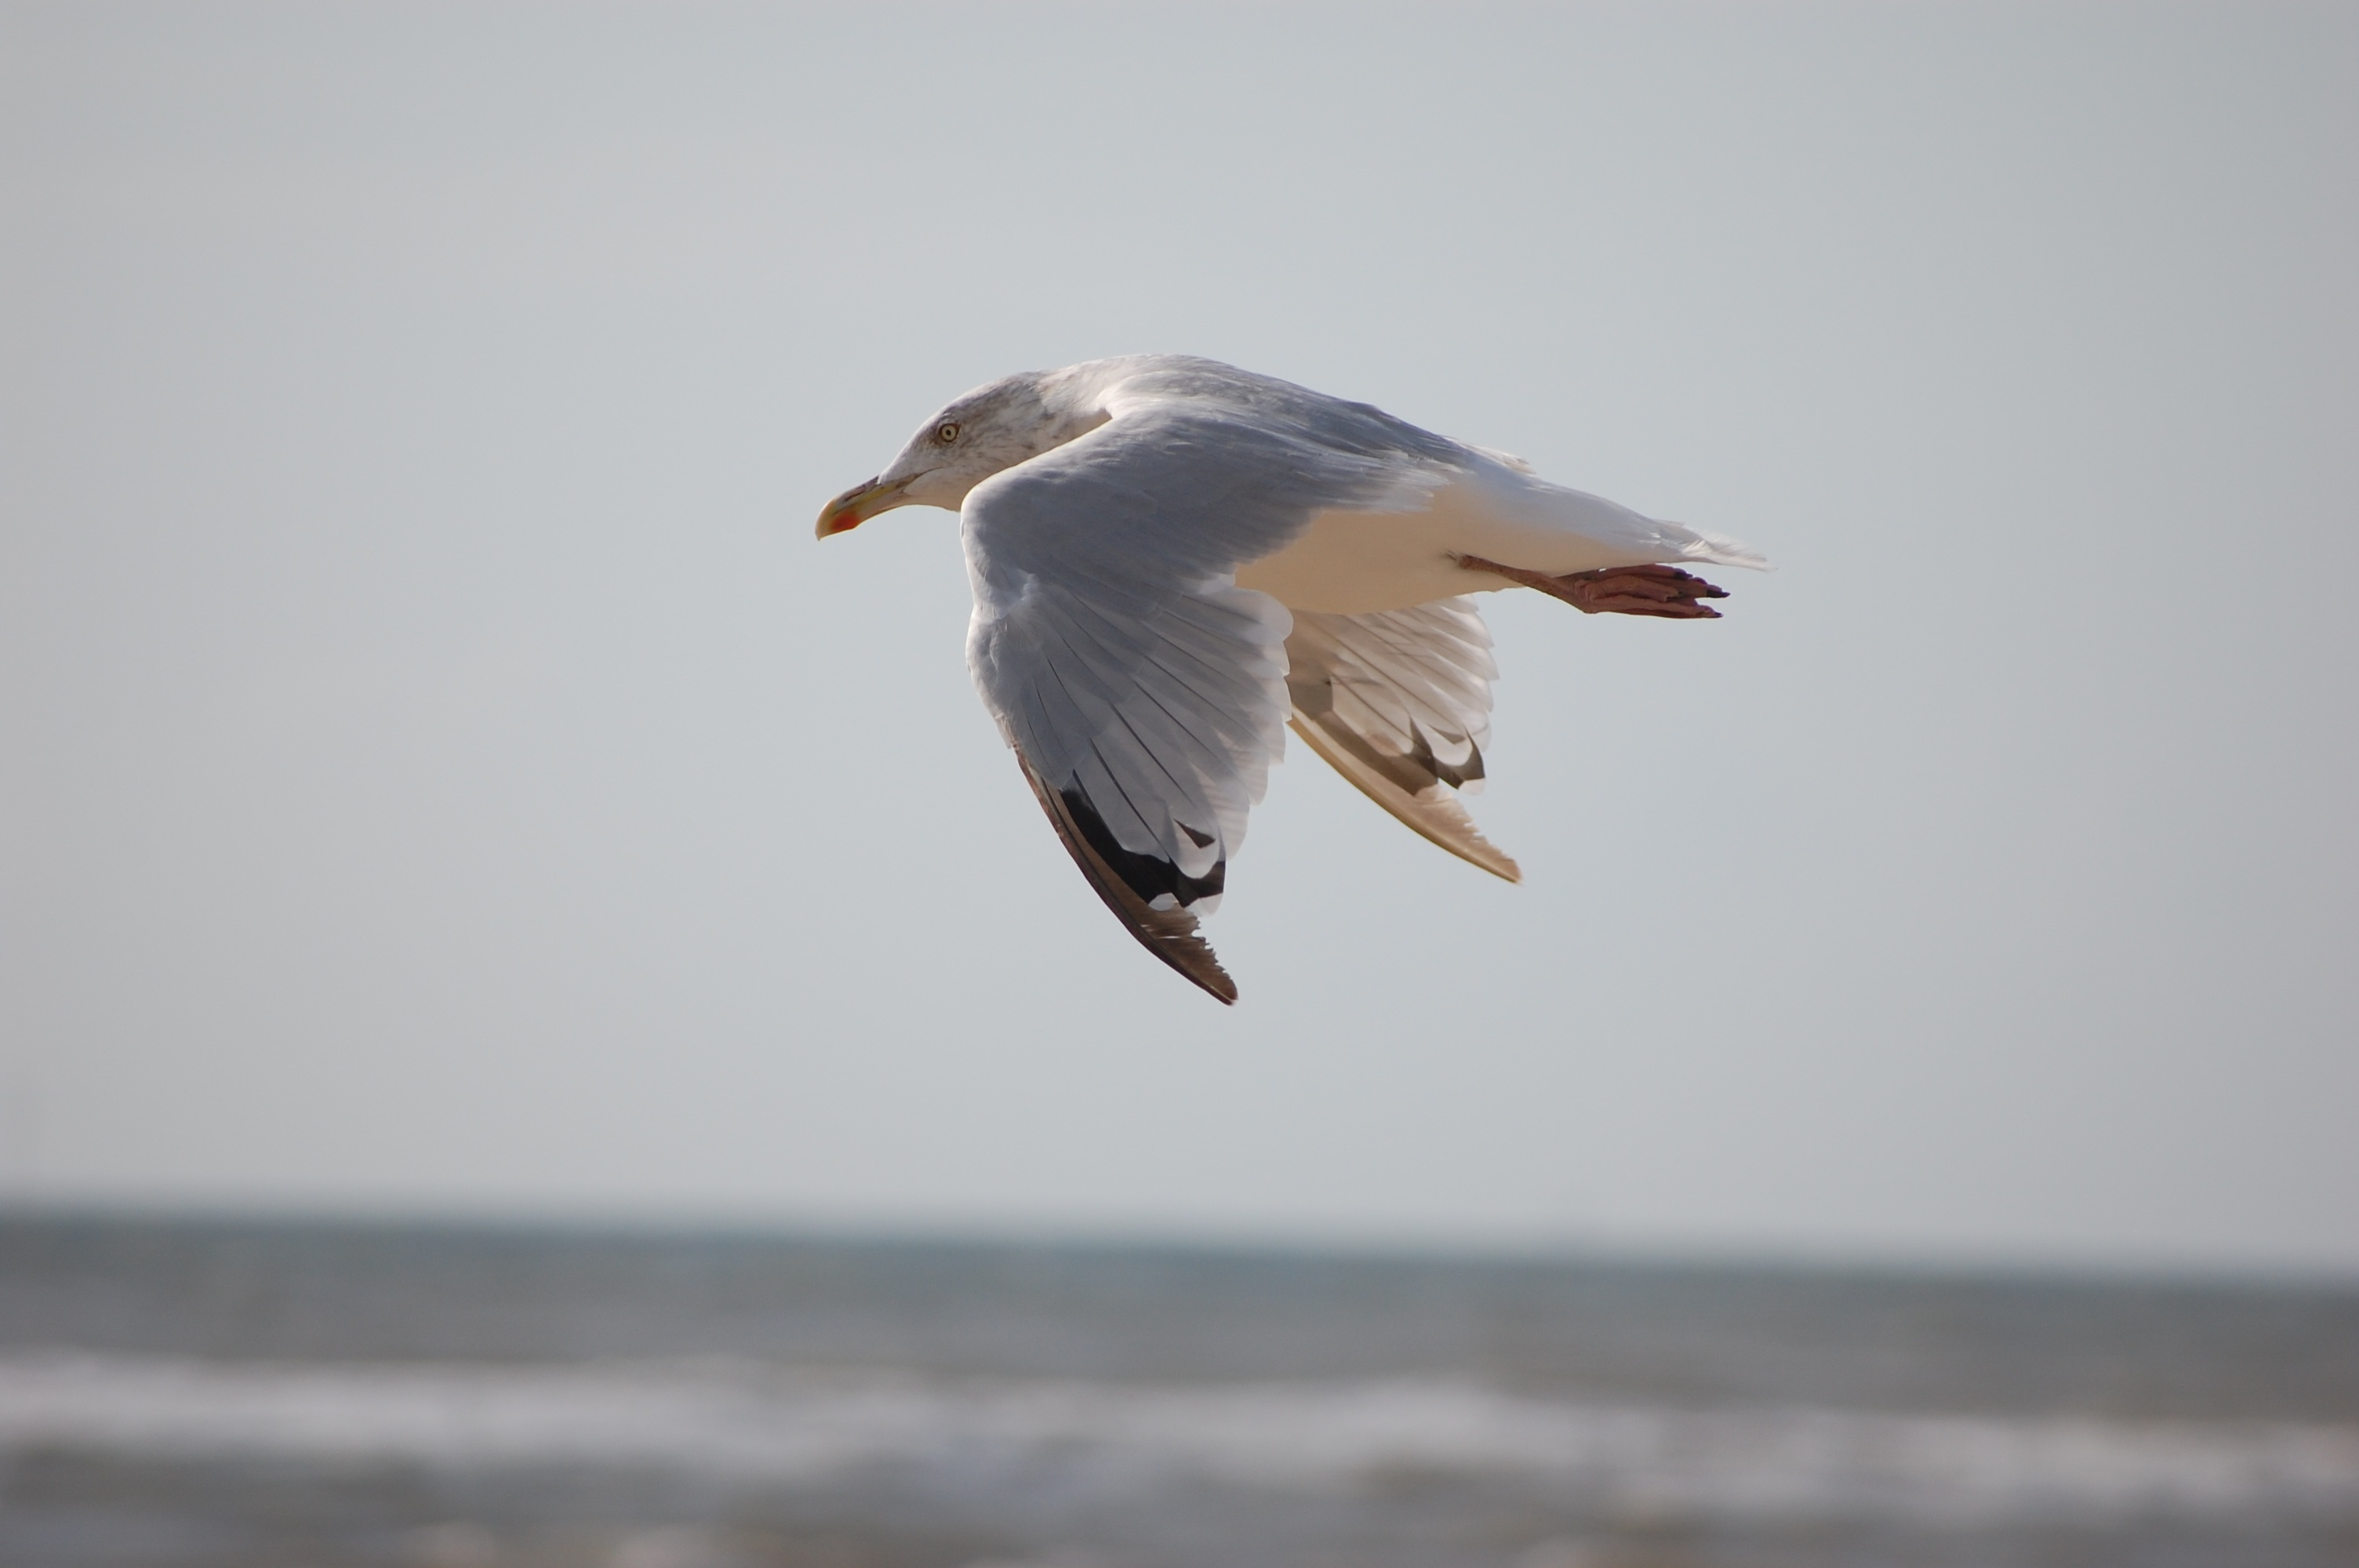 103018 download wallpaper Animals, Gull, Seagull, Bird, Flight, Marine, Sea screensavers and pictures for free